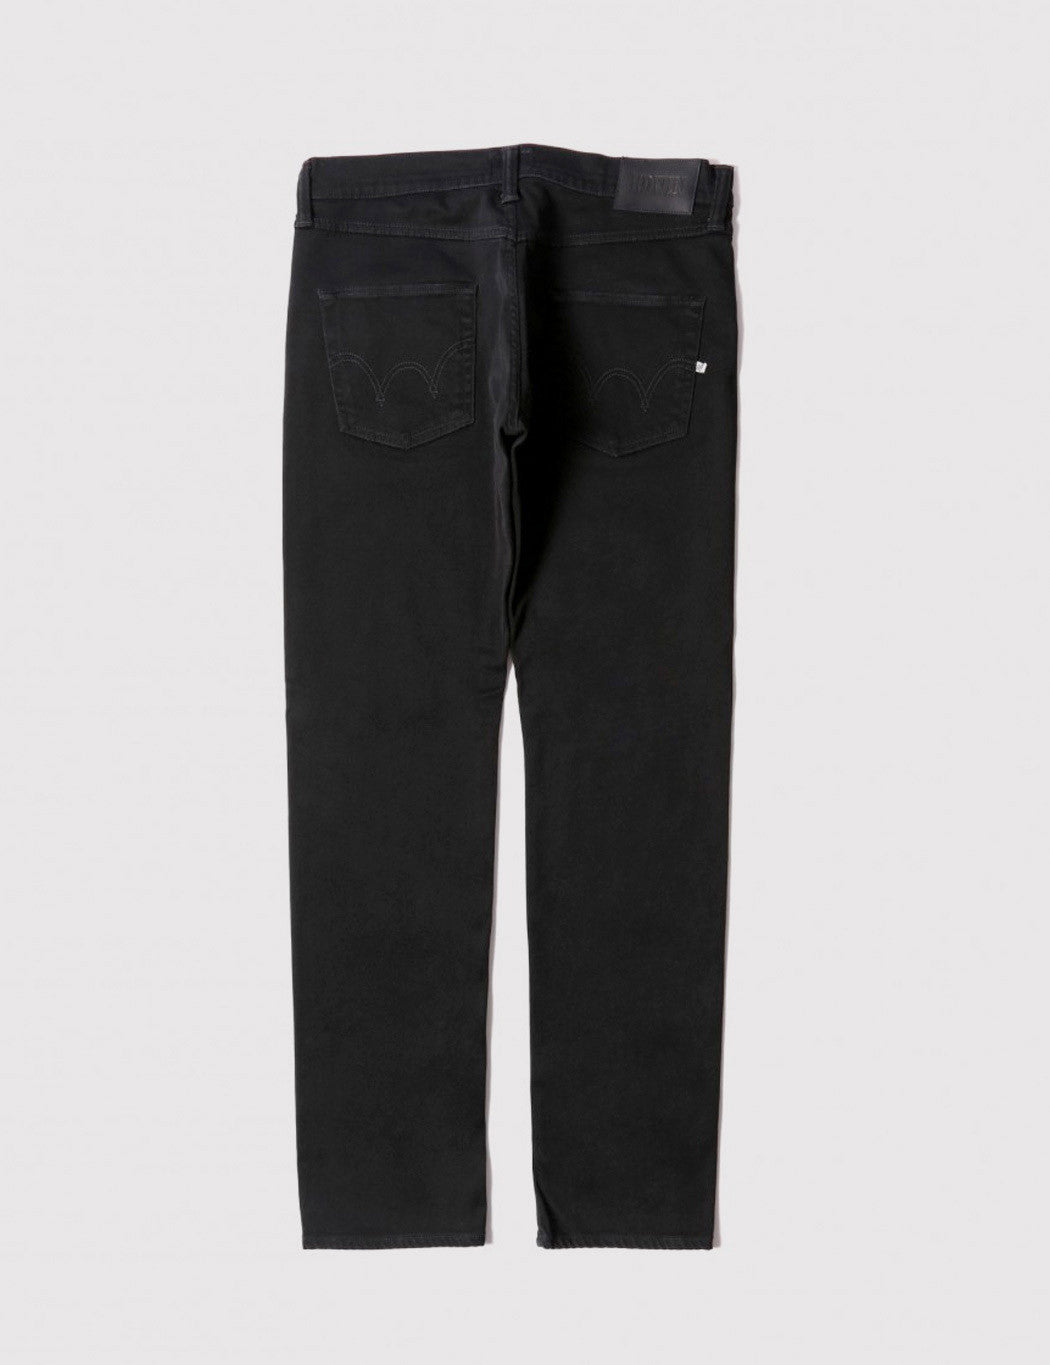 Edwin ED-55 CS Ink Black 11oz Jeans (Relax Tapered) - Black Rinsed